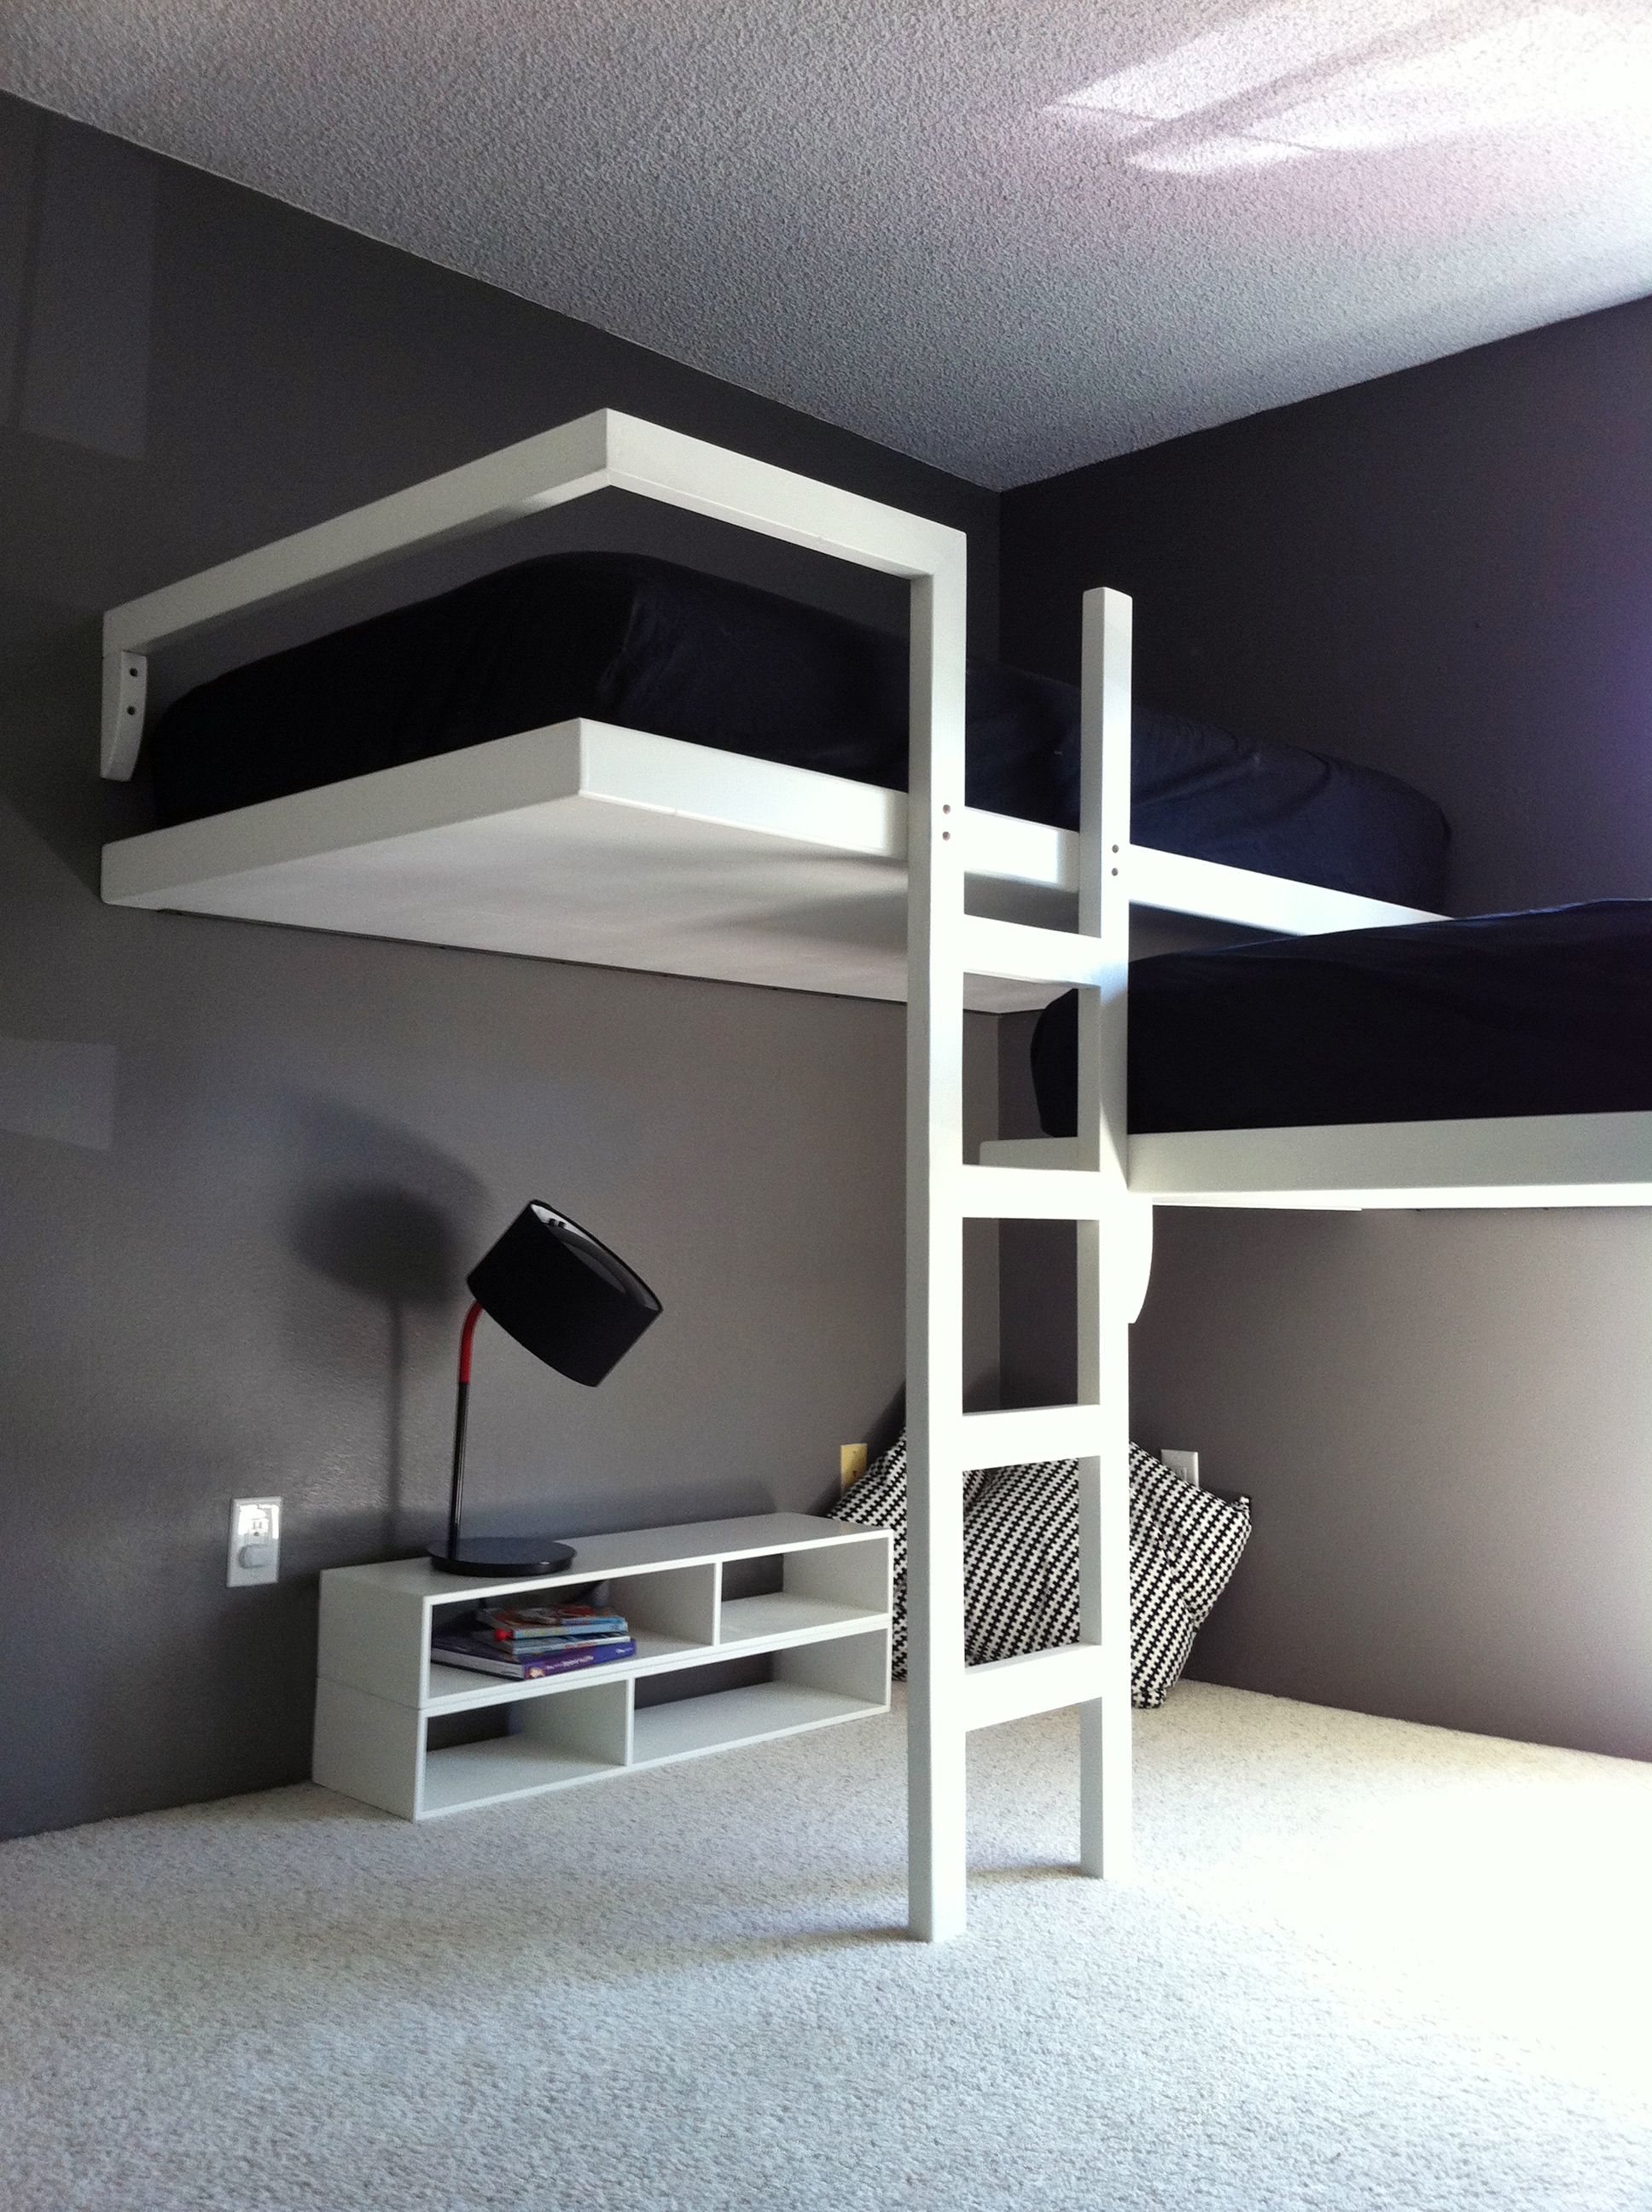 Design Fab Llc Cool Puter Setups And Gaming Loft Bed